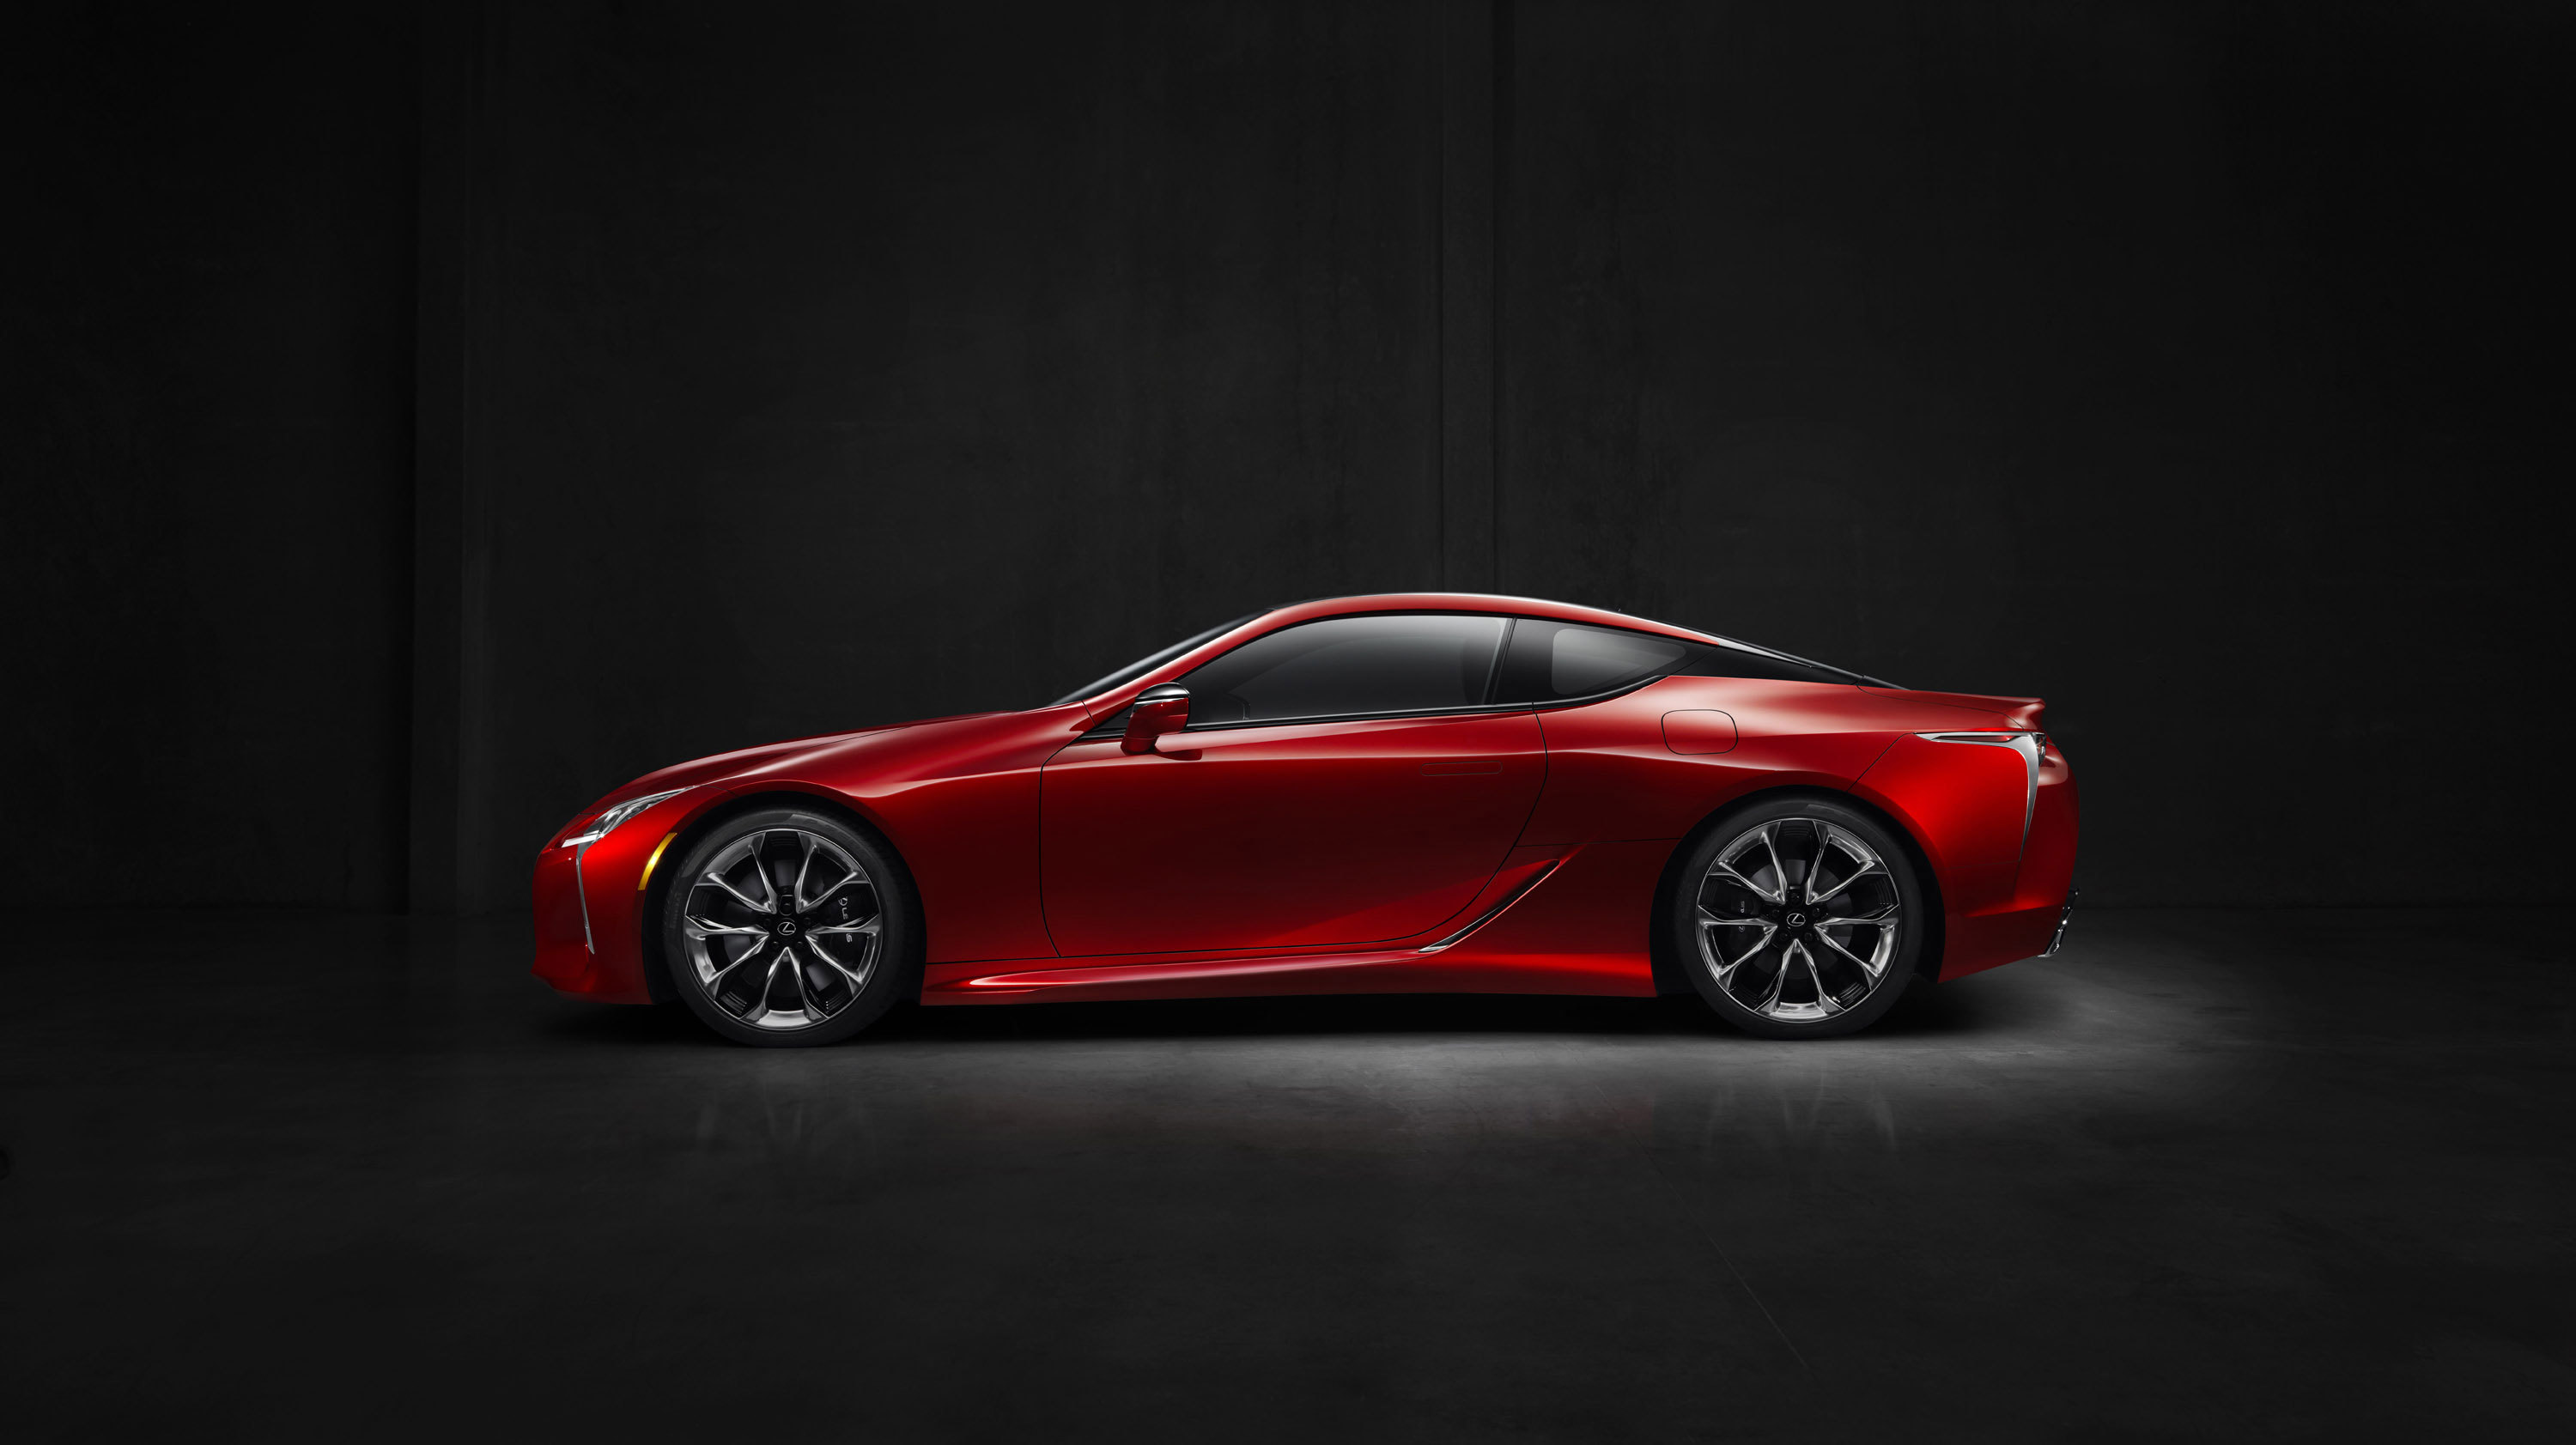 lexus lc 500h wallpapers images photos pictures backgrounds